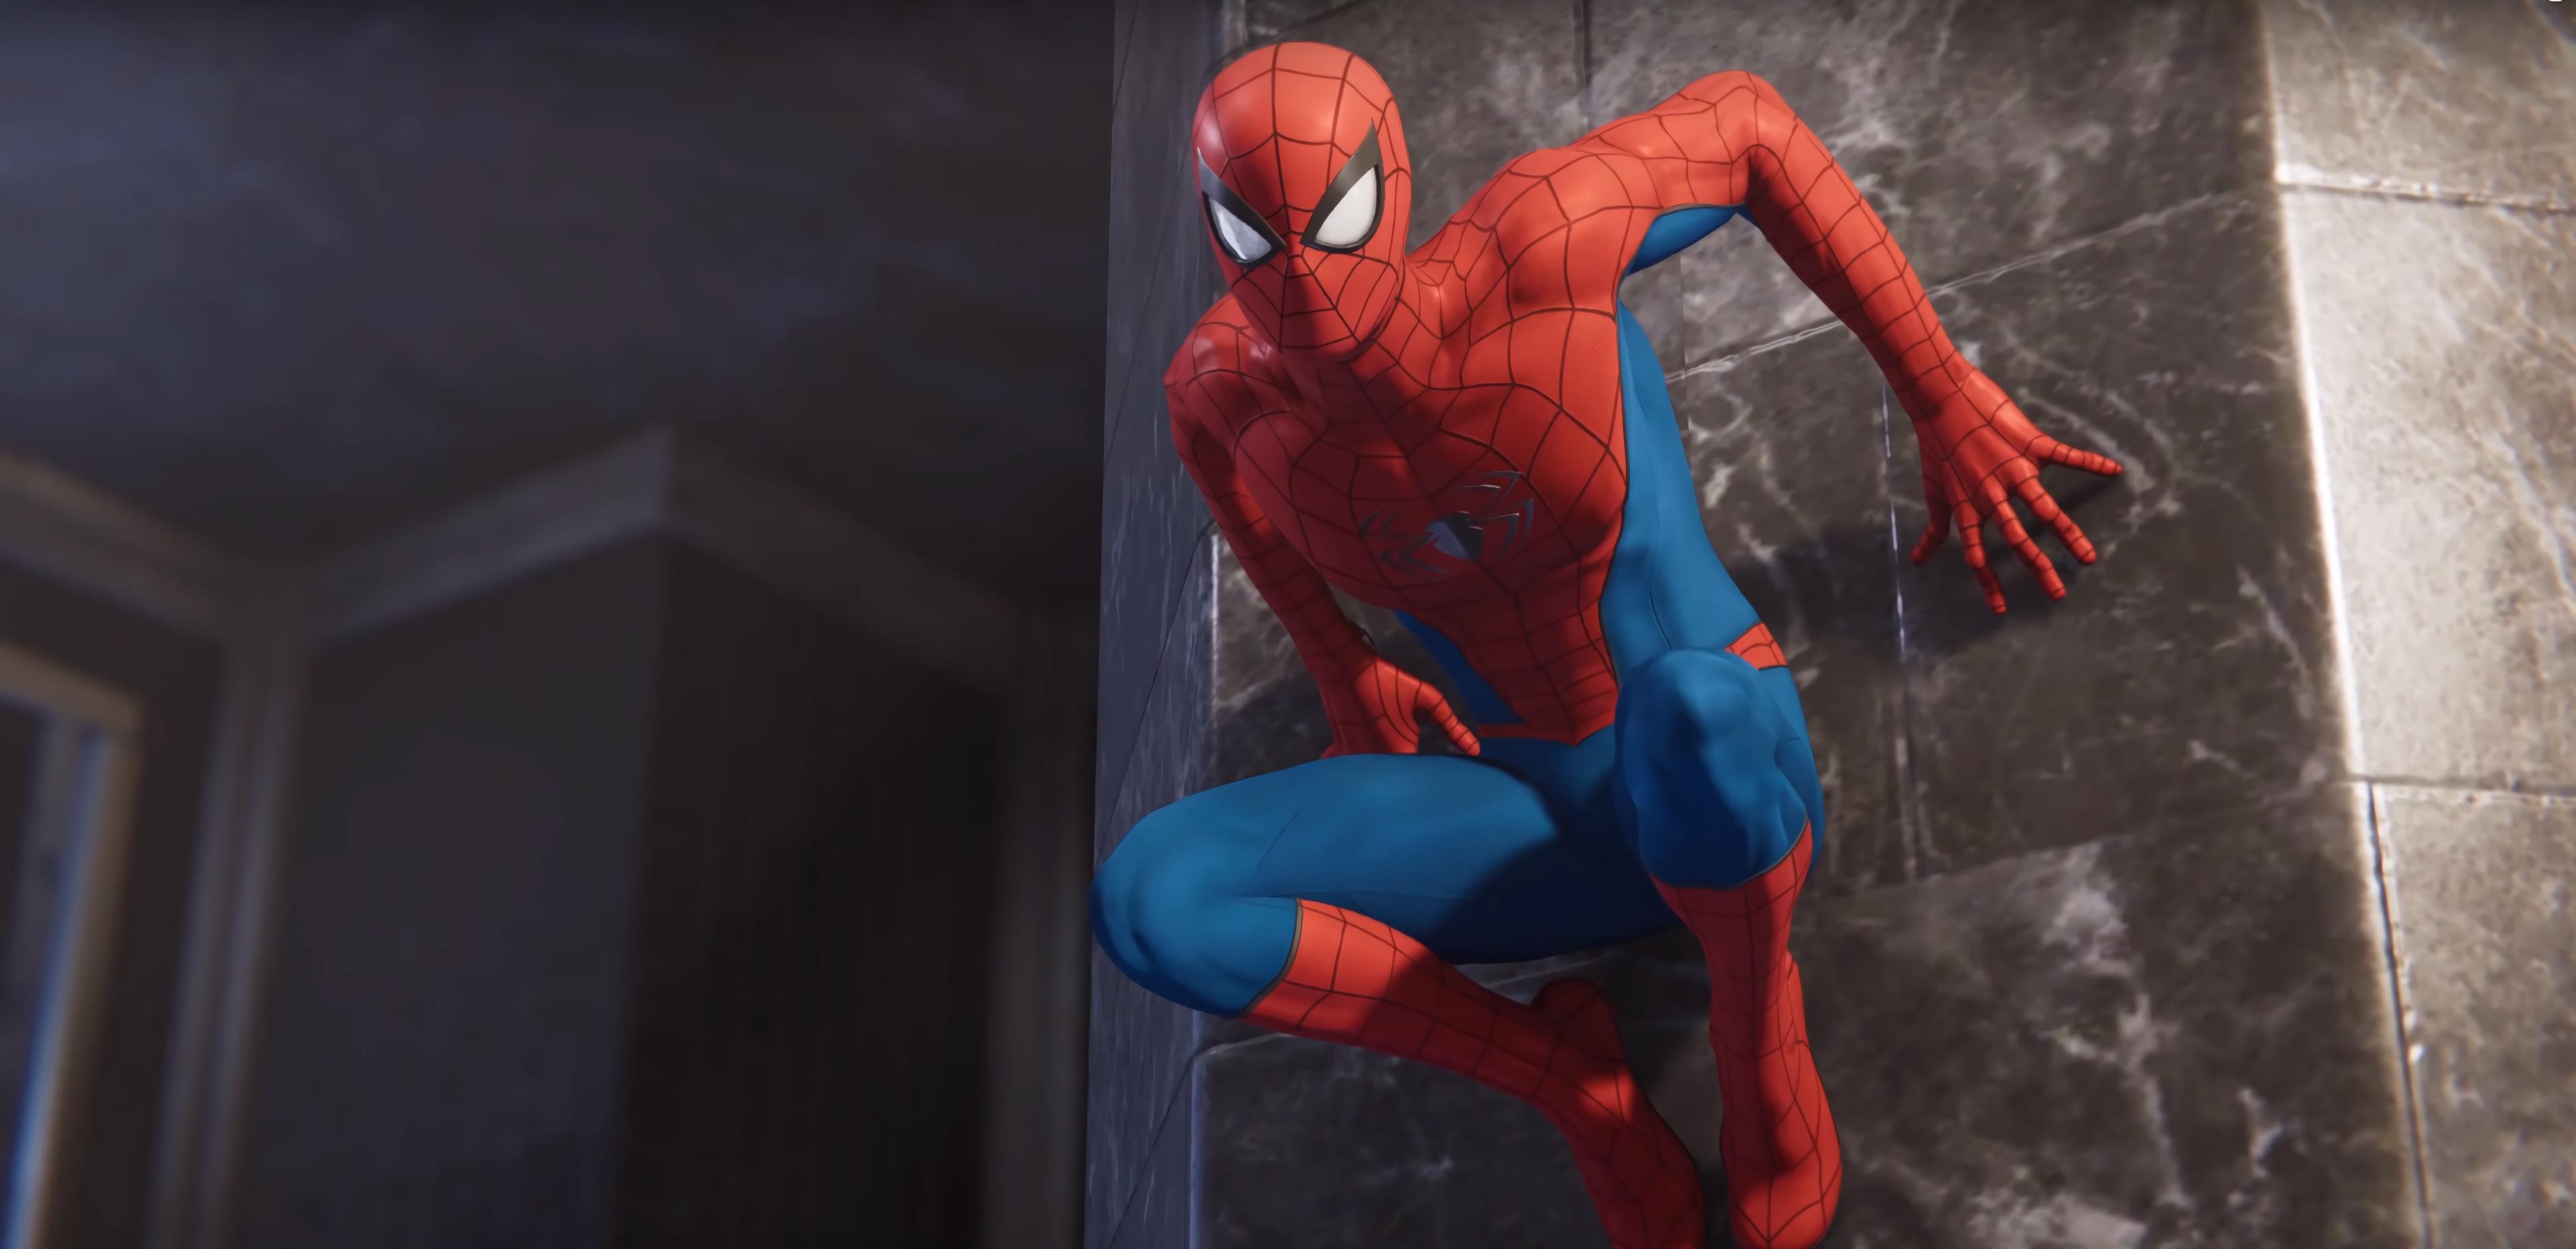 Marvel Spiderman Classic Suit Ps4 Hd Games 4k Wallpapers Images